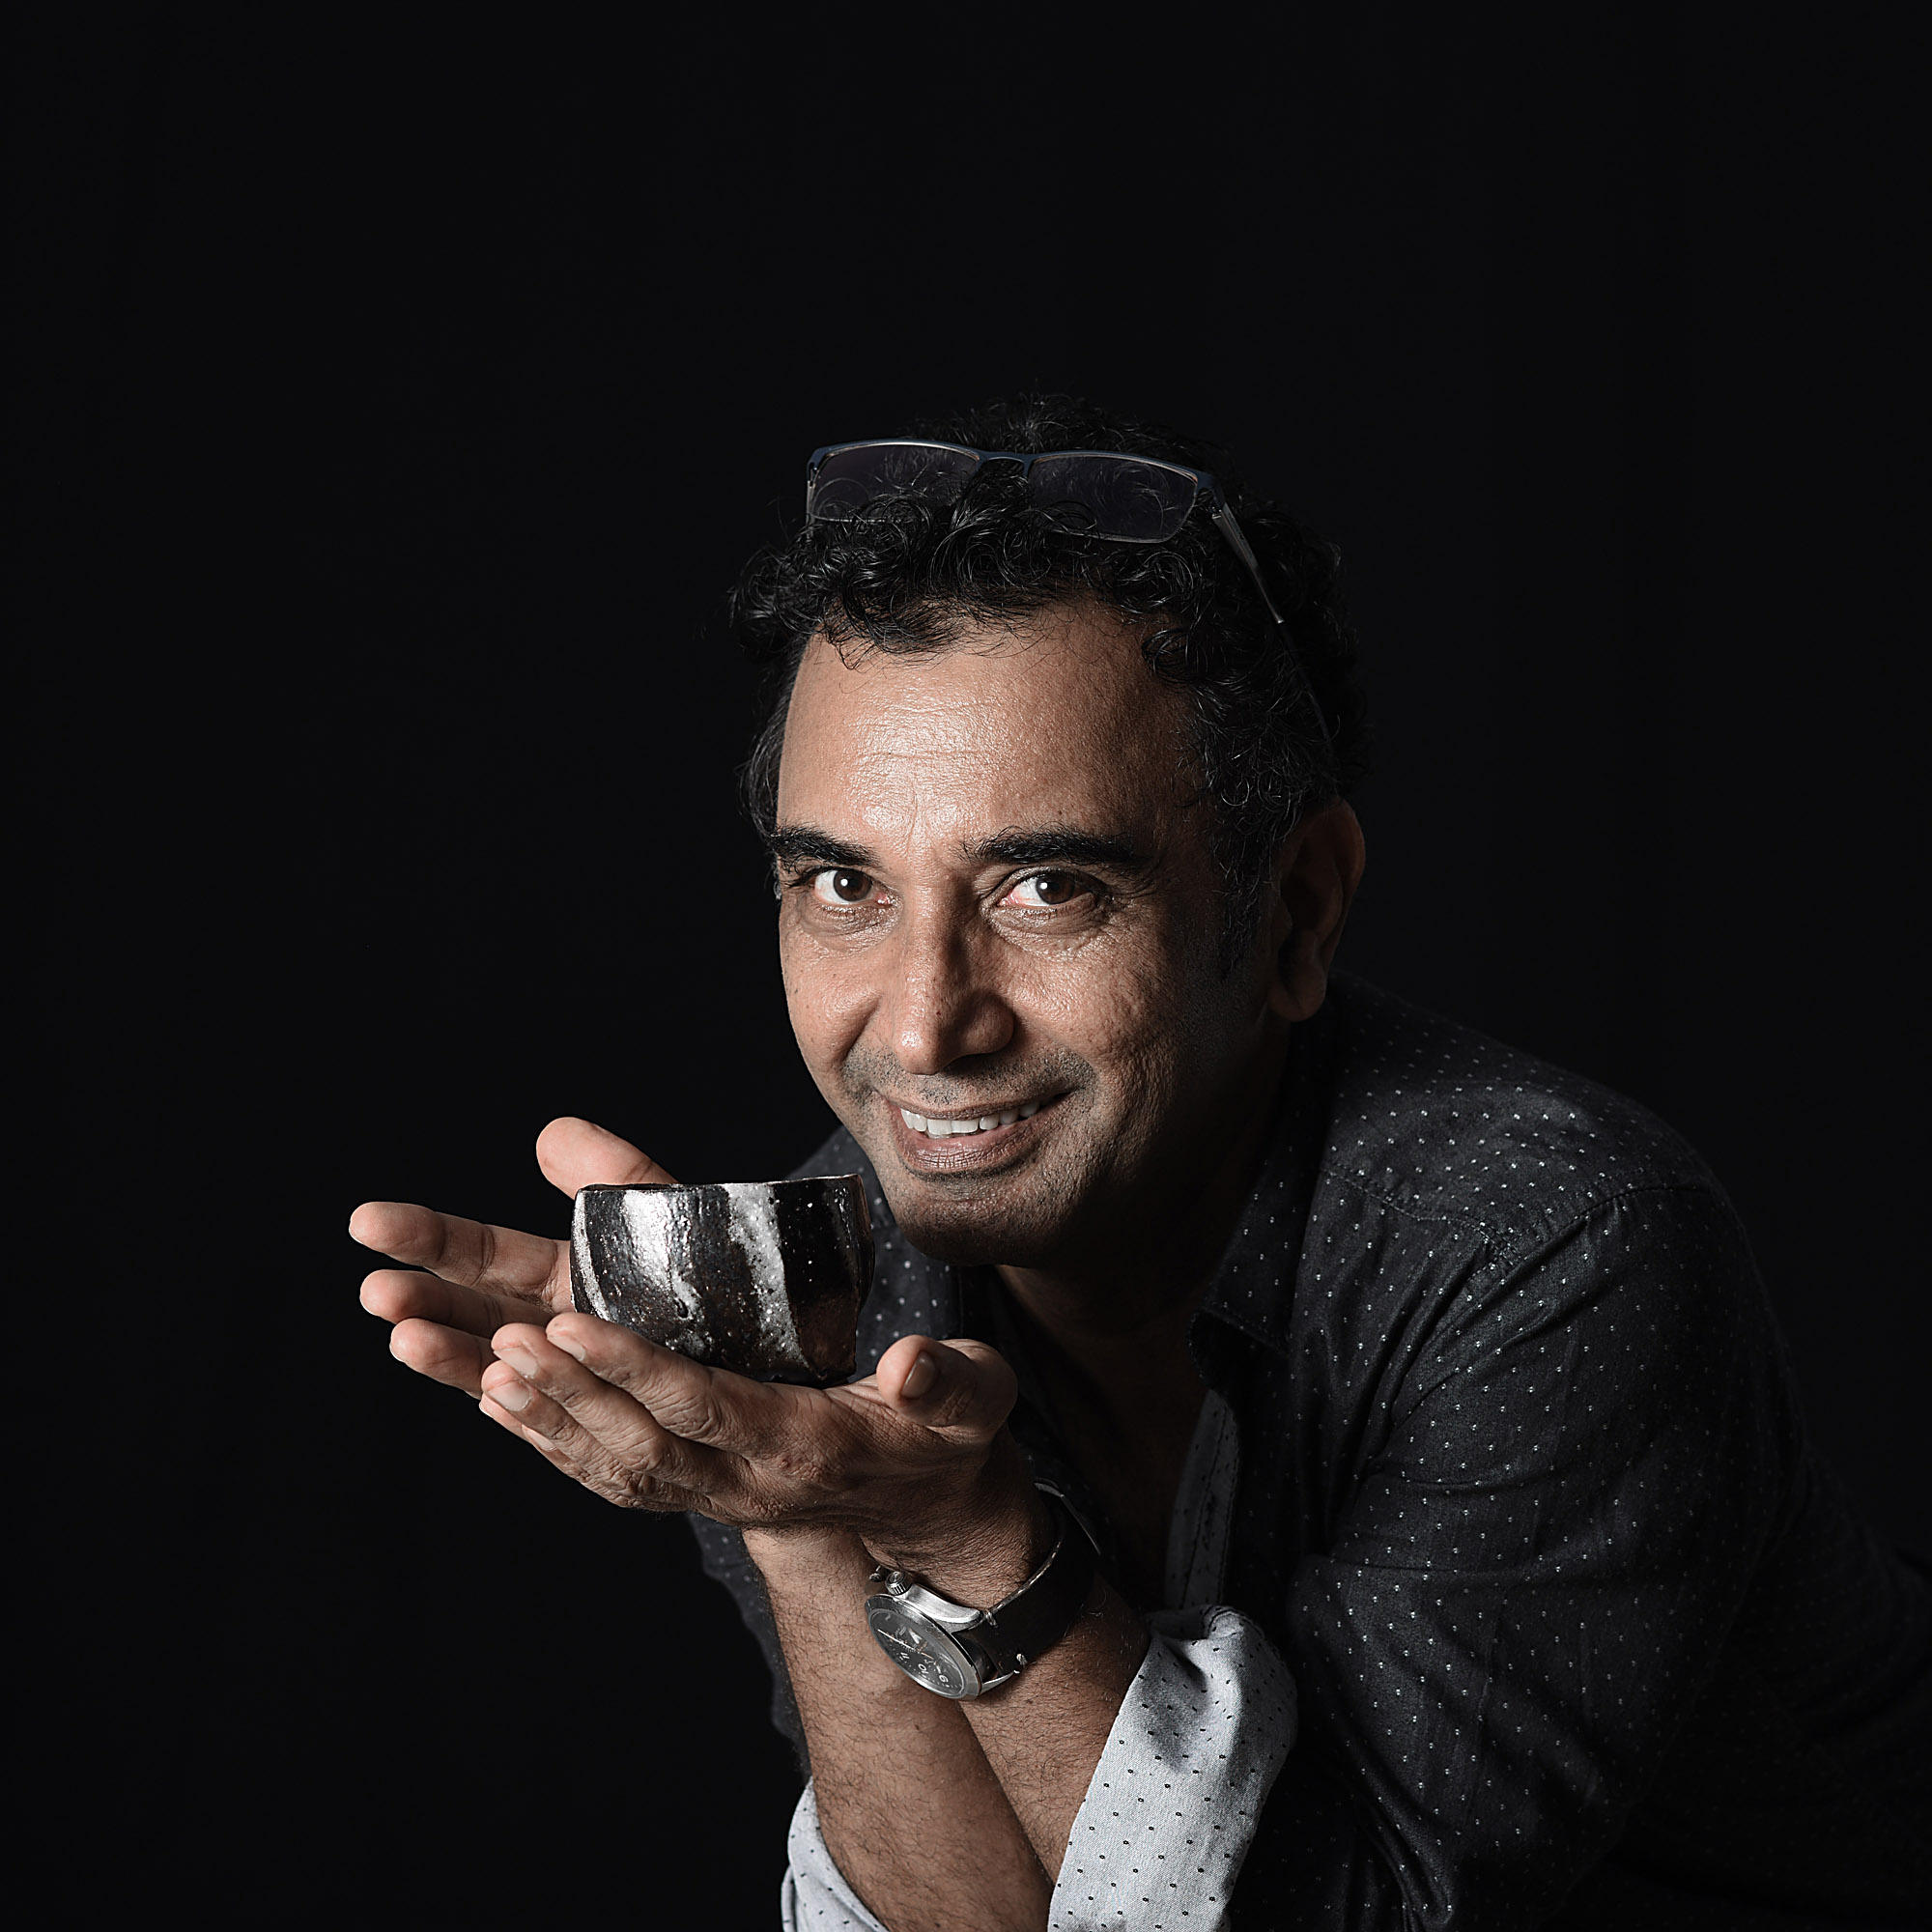 Meet Adil Writer, Ceramic Artist